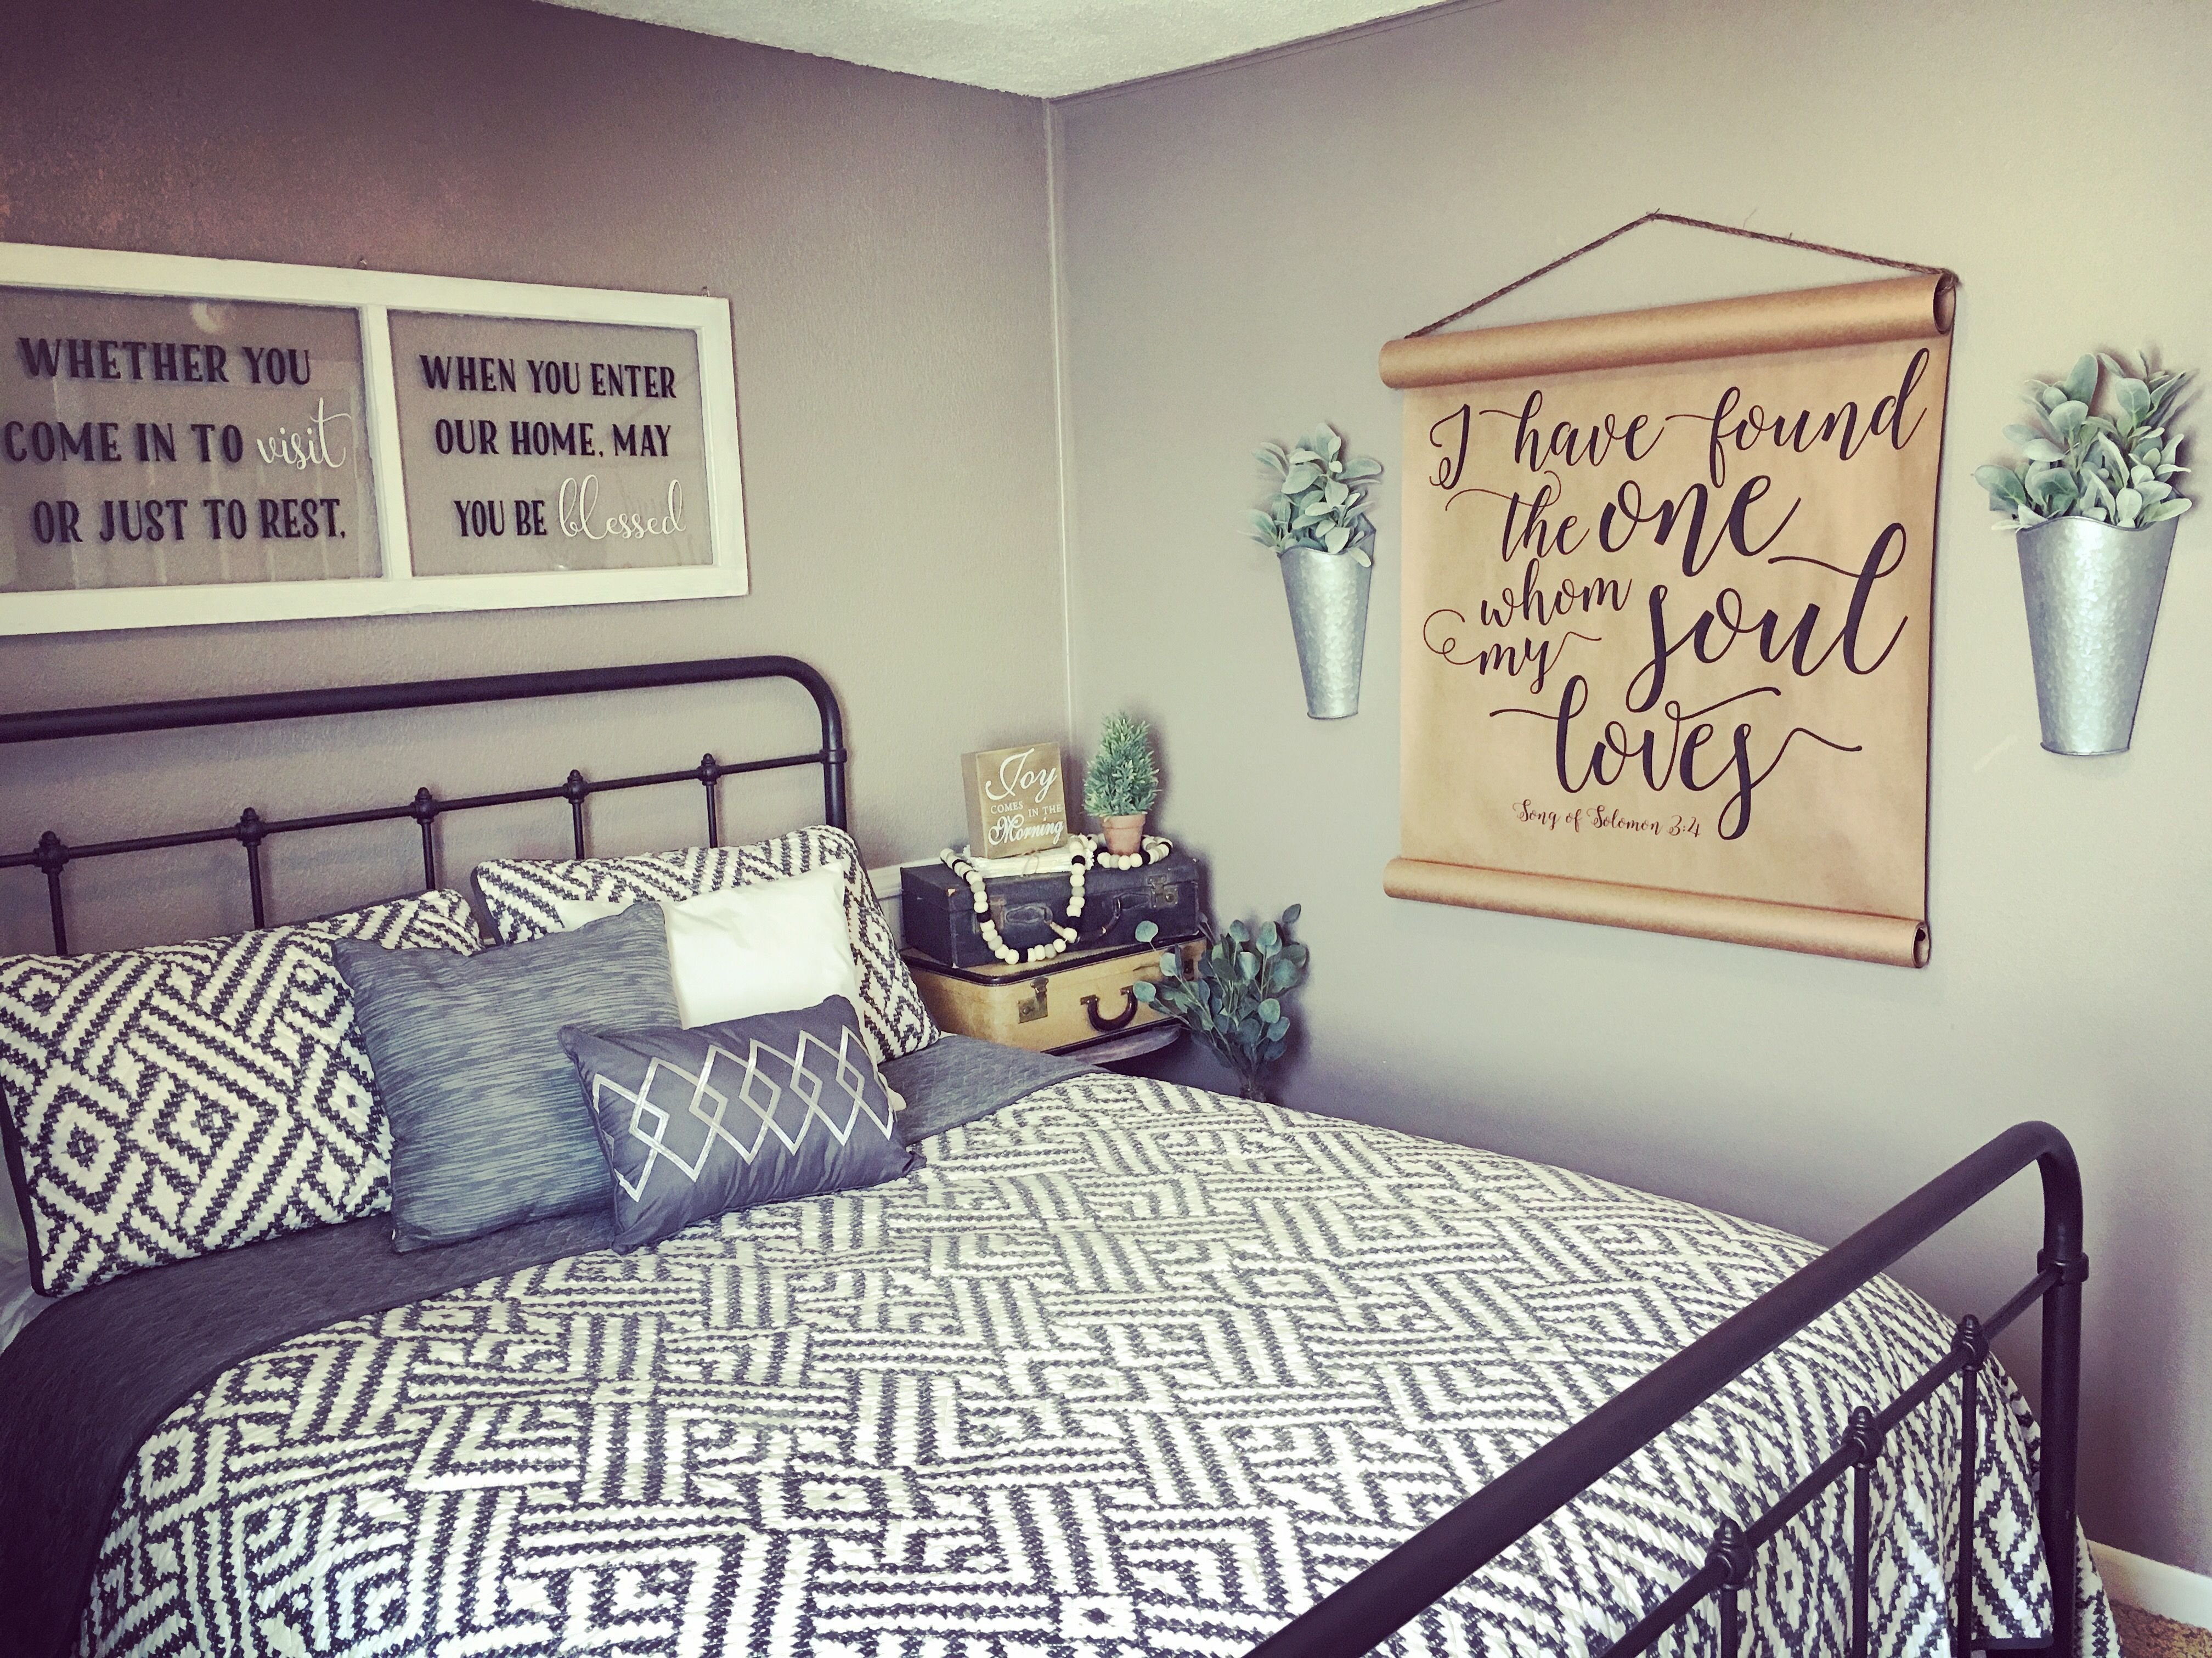 Guest bedroom decor by Refunked Junque